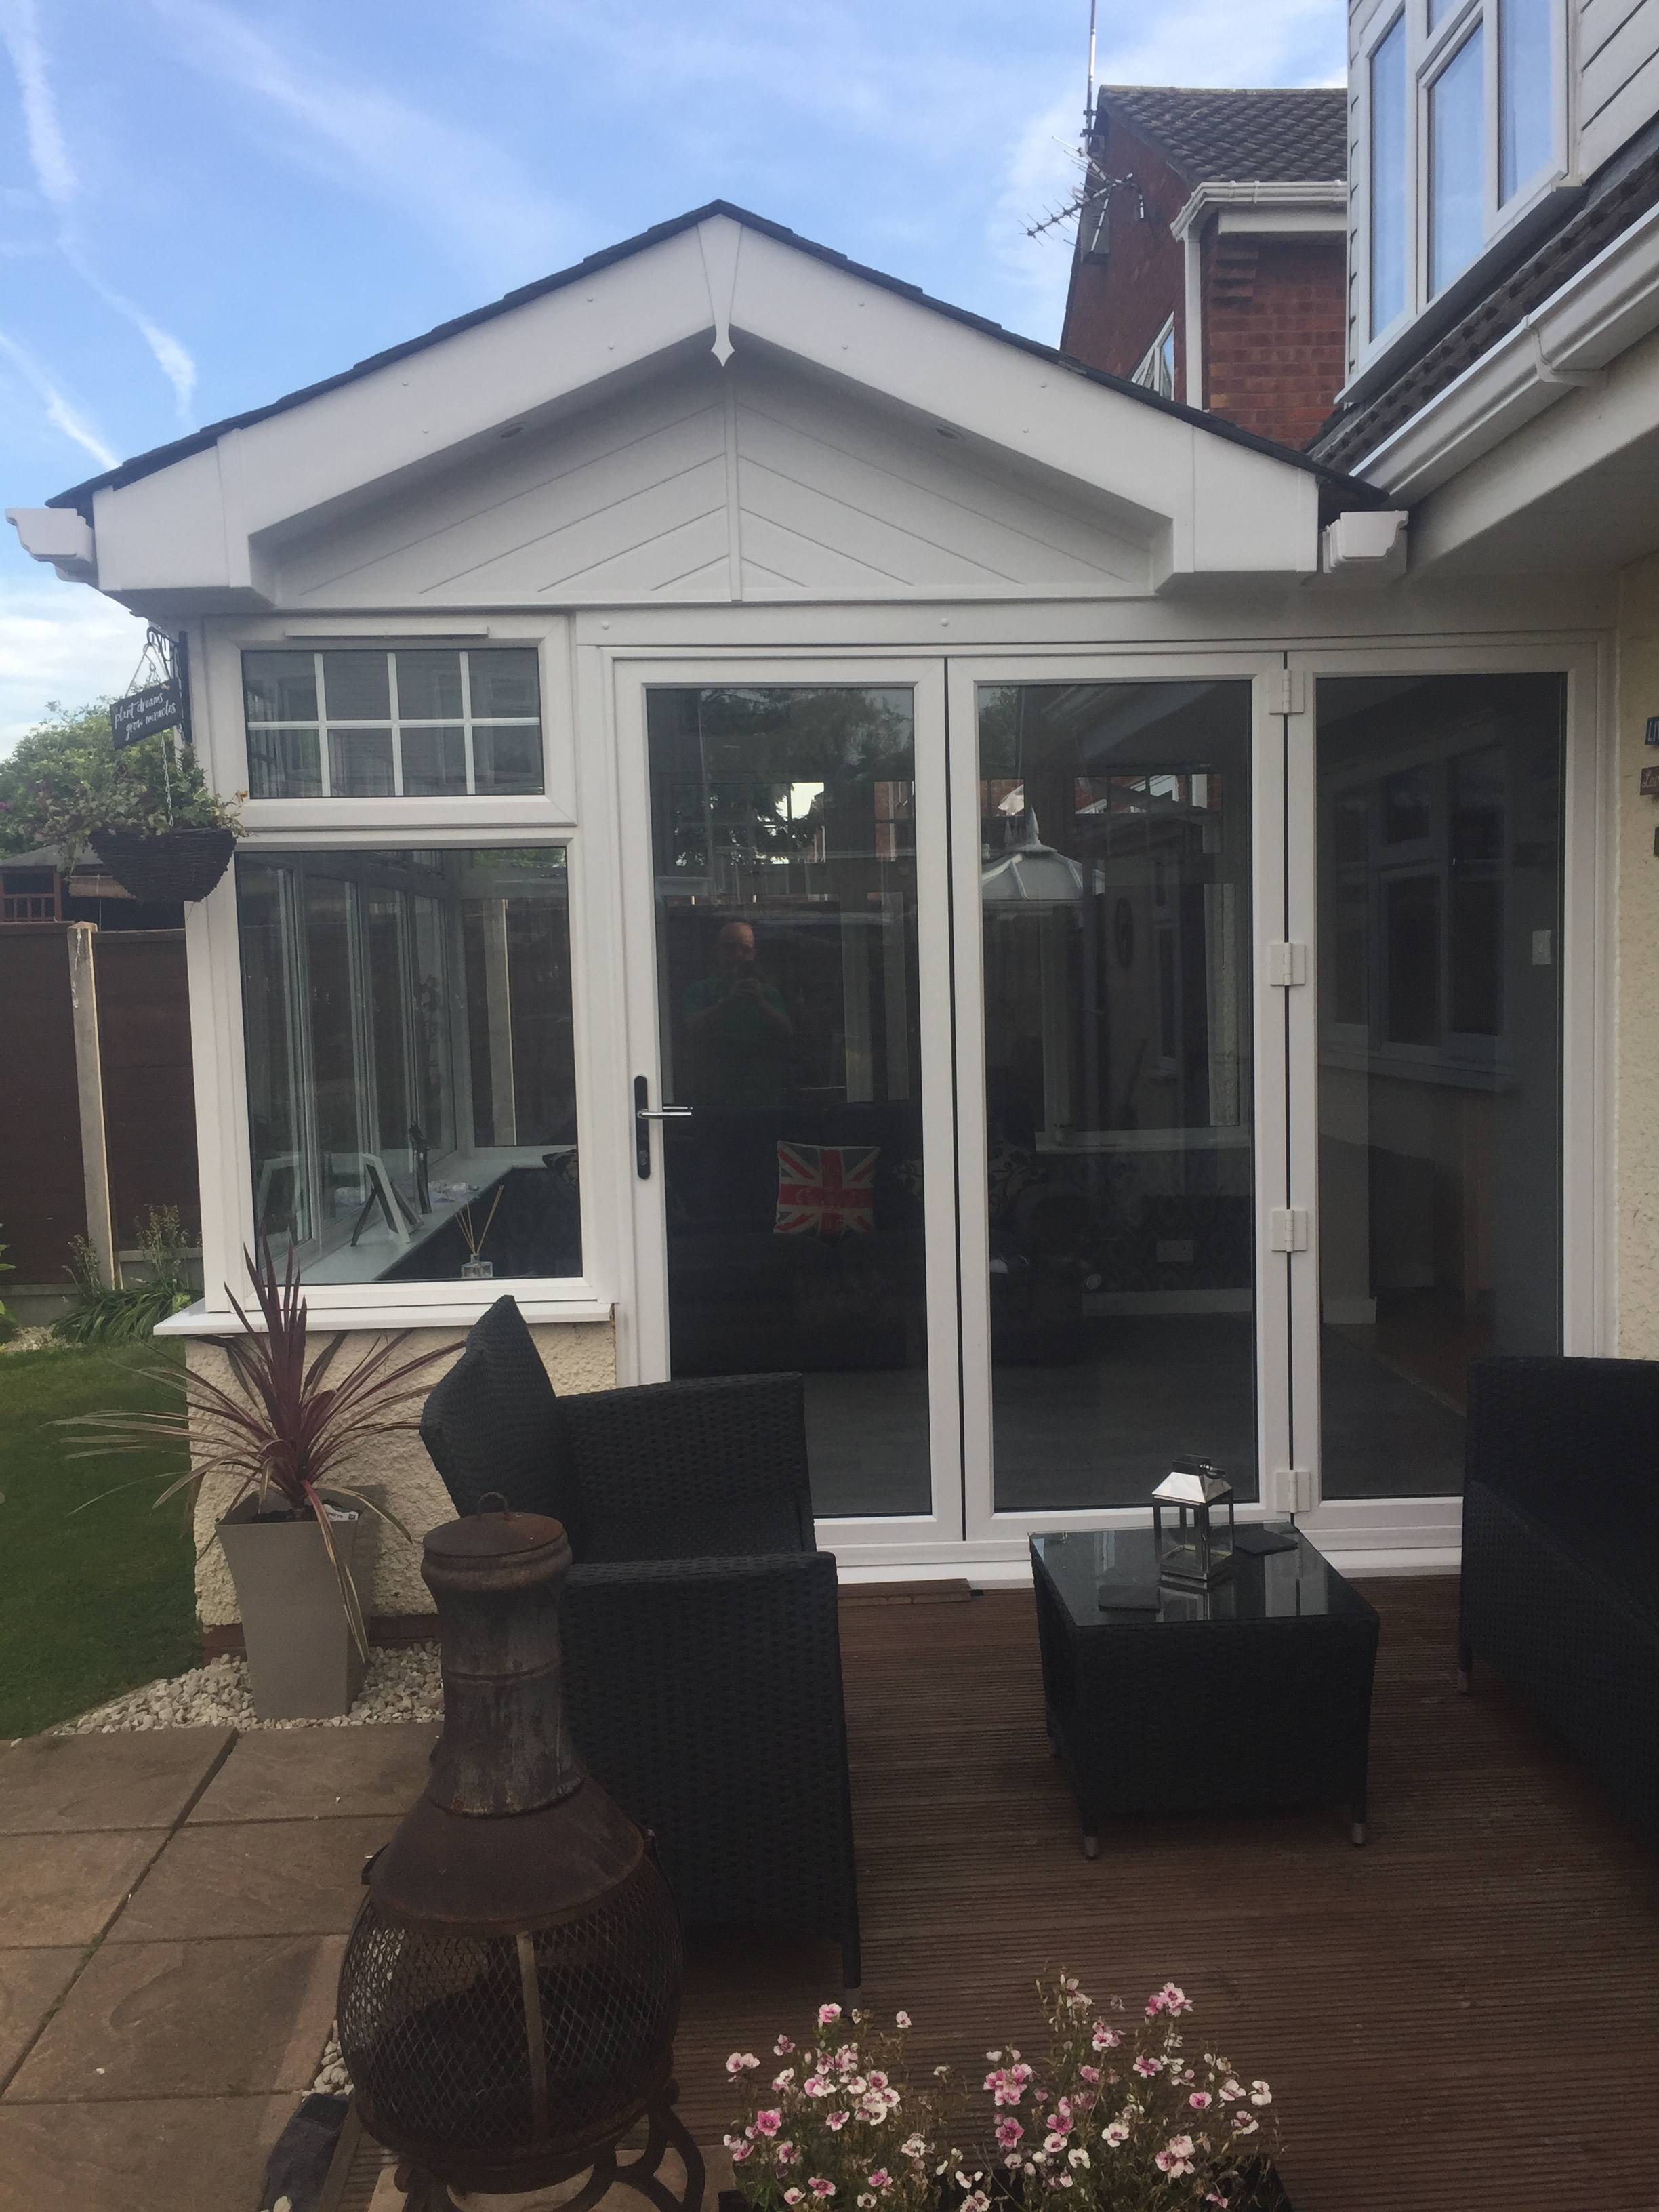 White Gable ended conservatory